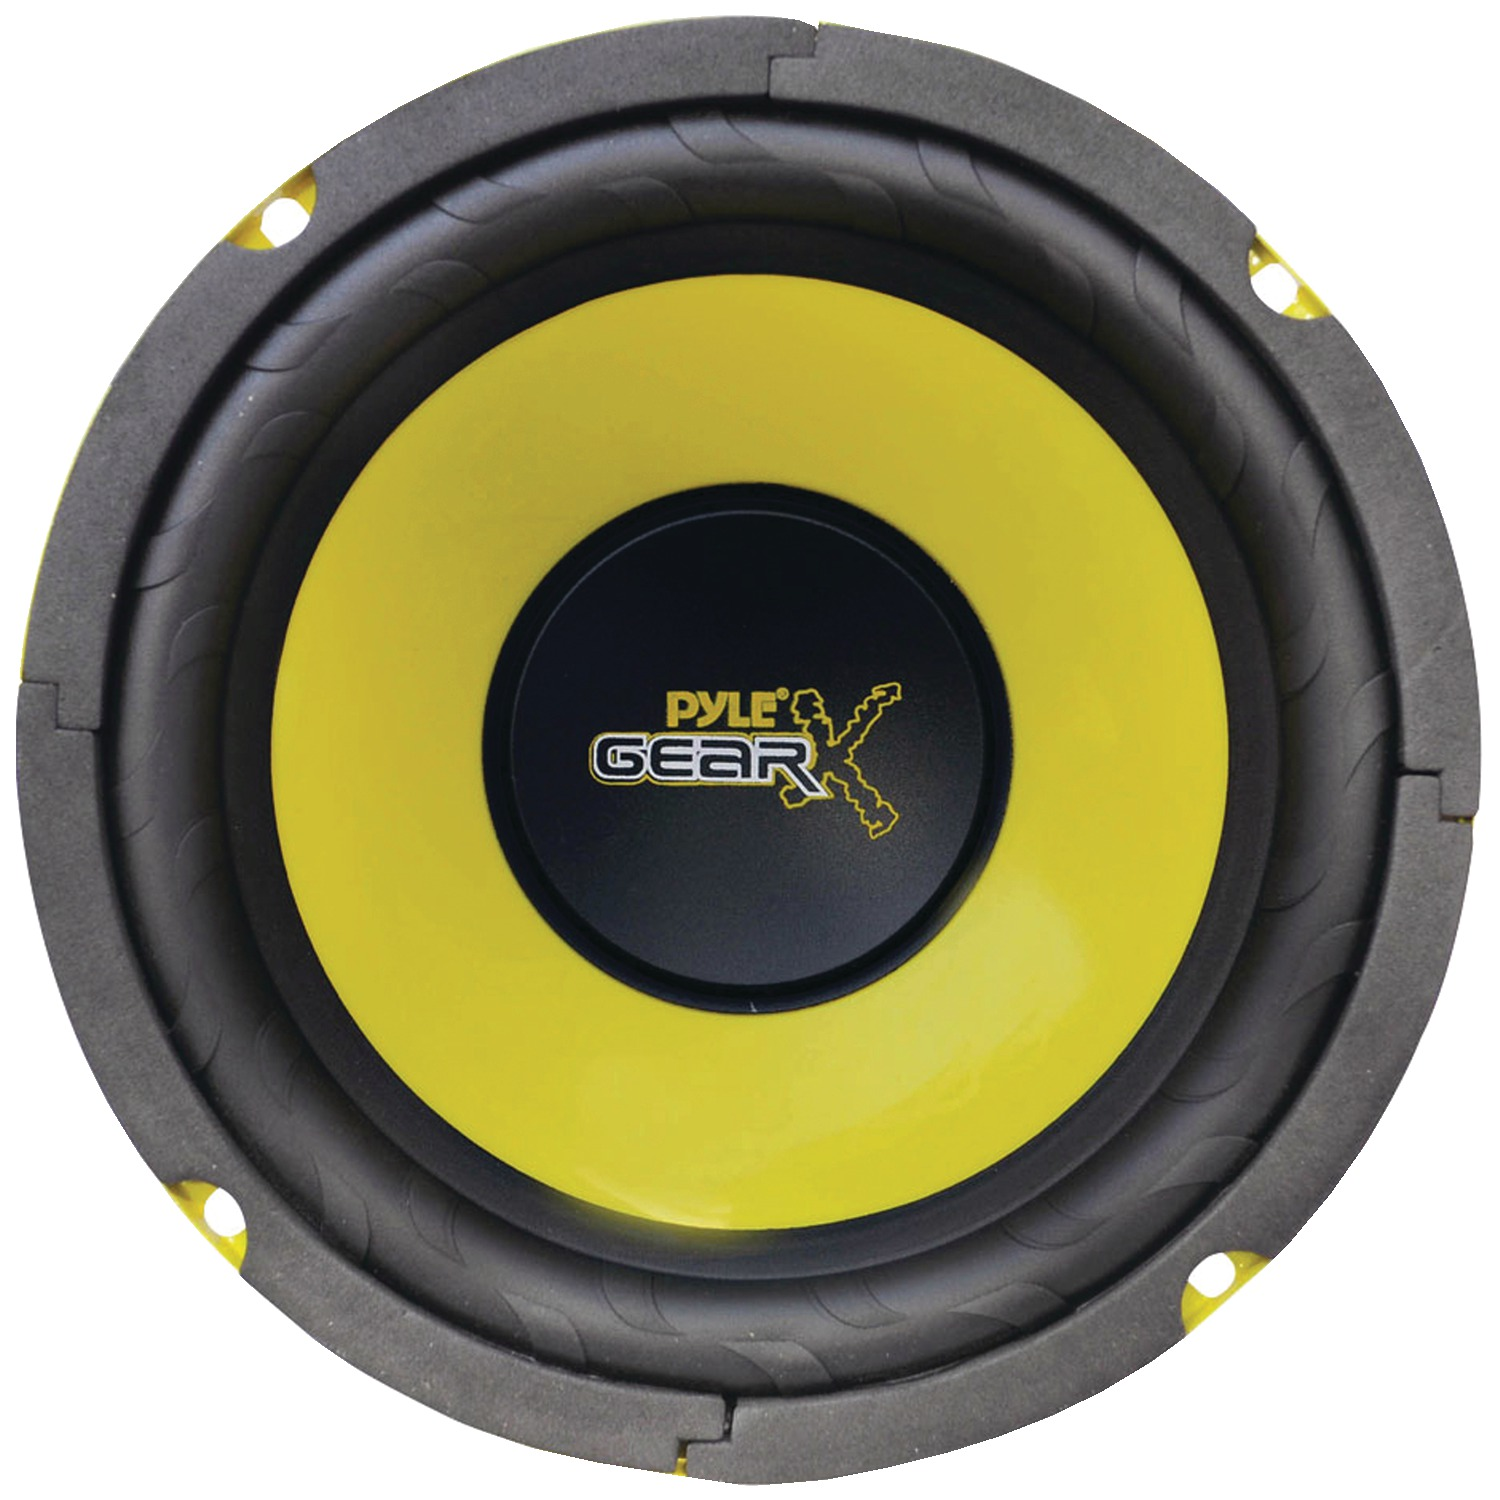 "Pyle Plg64 Gear-x Series 6.5"" 300-watt Mid Bass Woofer"